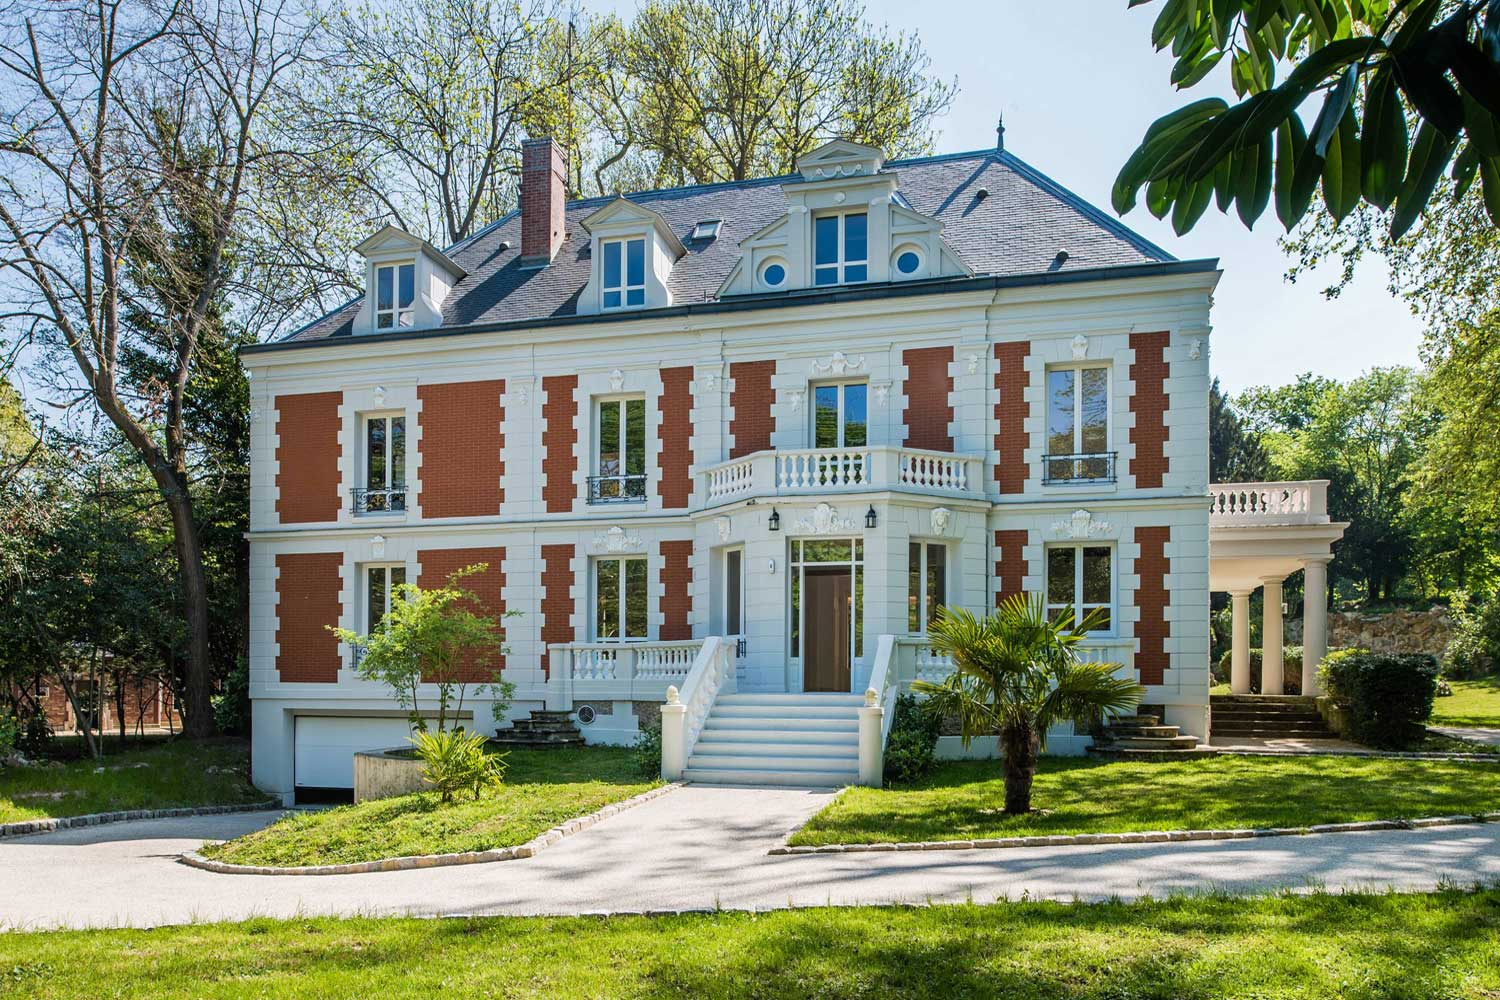 <b>Rueil Malmaison, Ile-De-France, France</b><br/><i>6 Bedrooms, 7,534.8 sq. ft.</i><br/>Six-bedroom home set in magnificent landscaped grounds